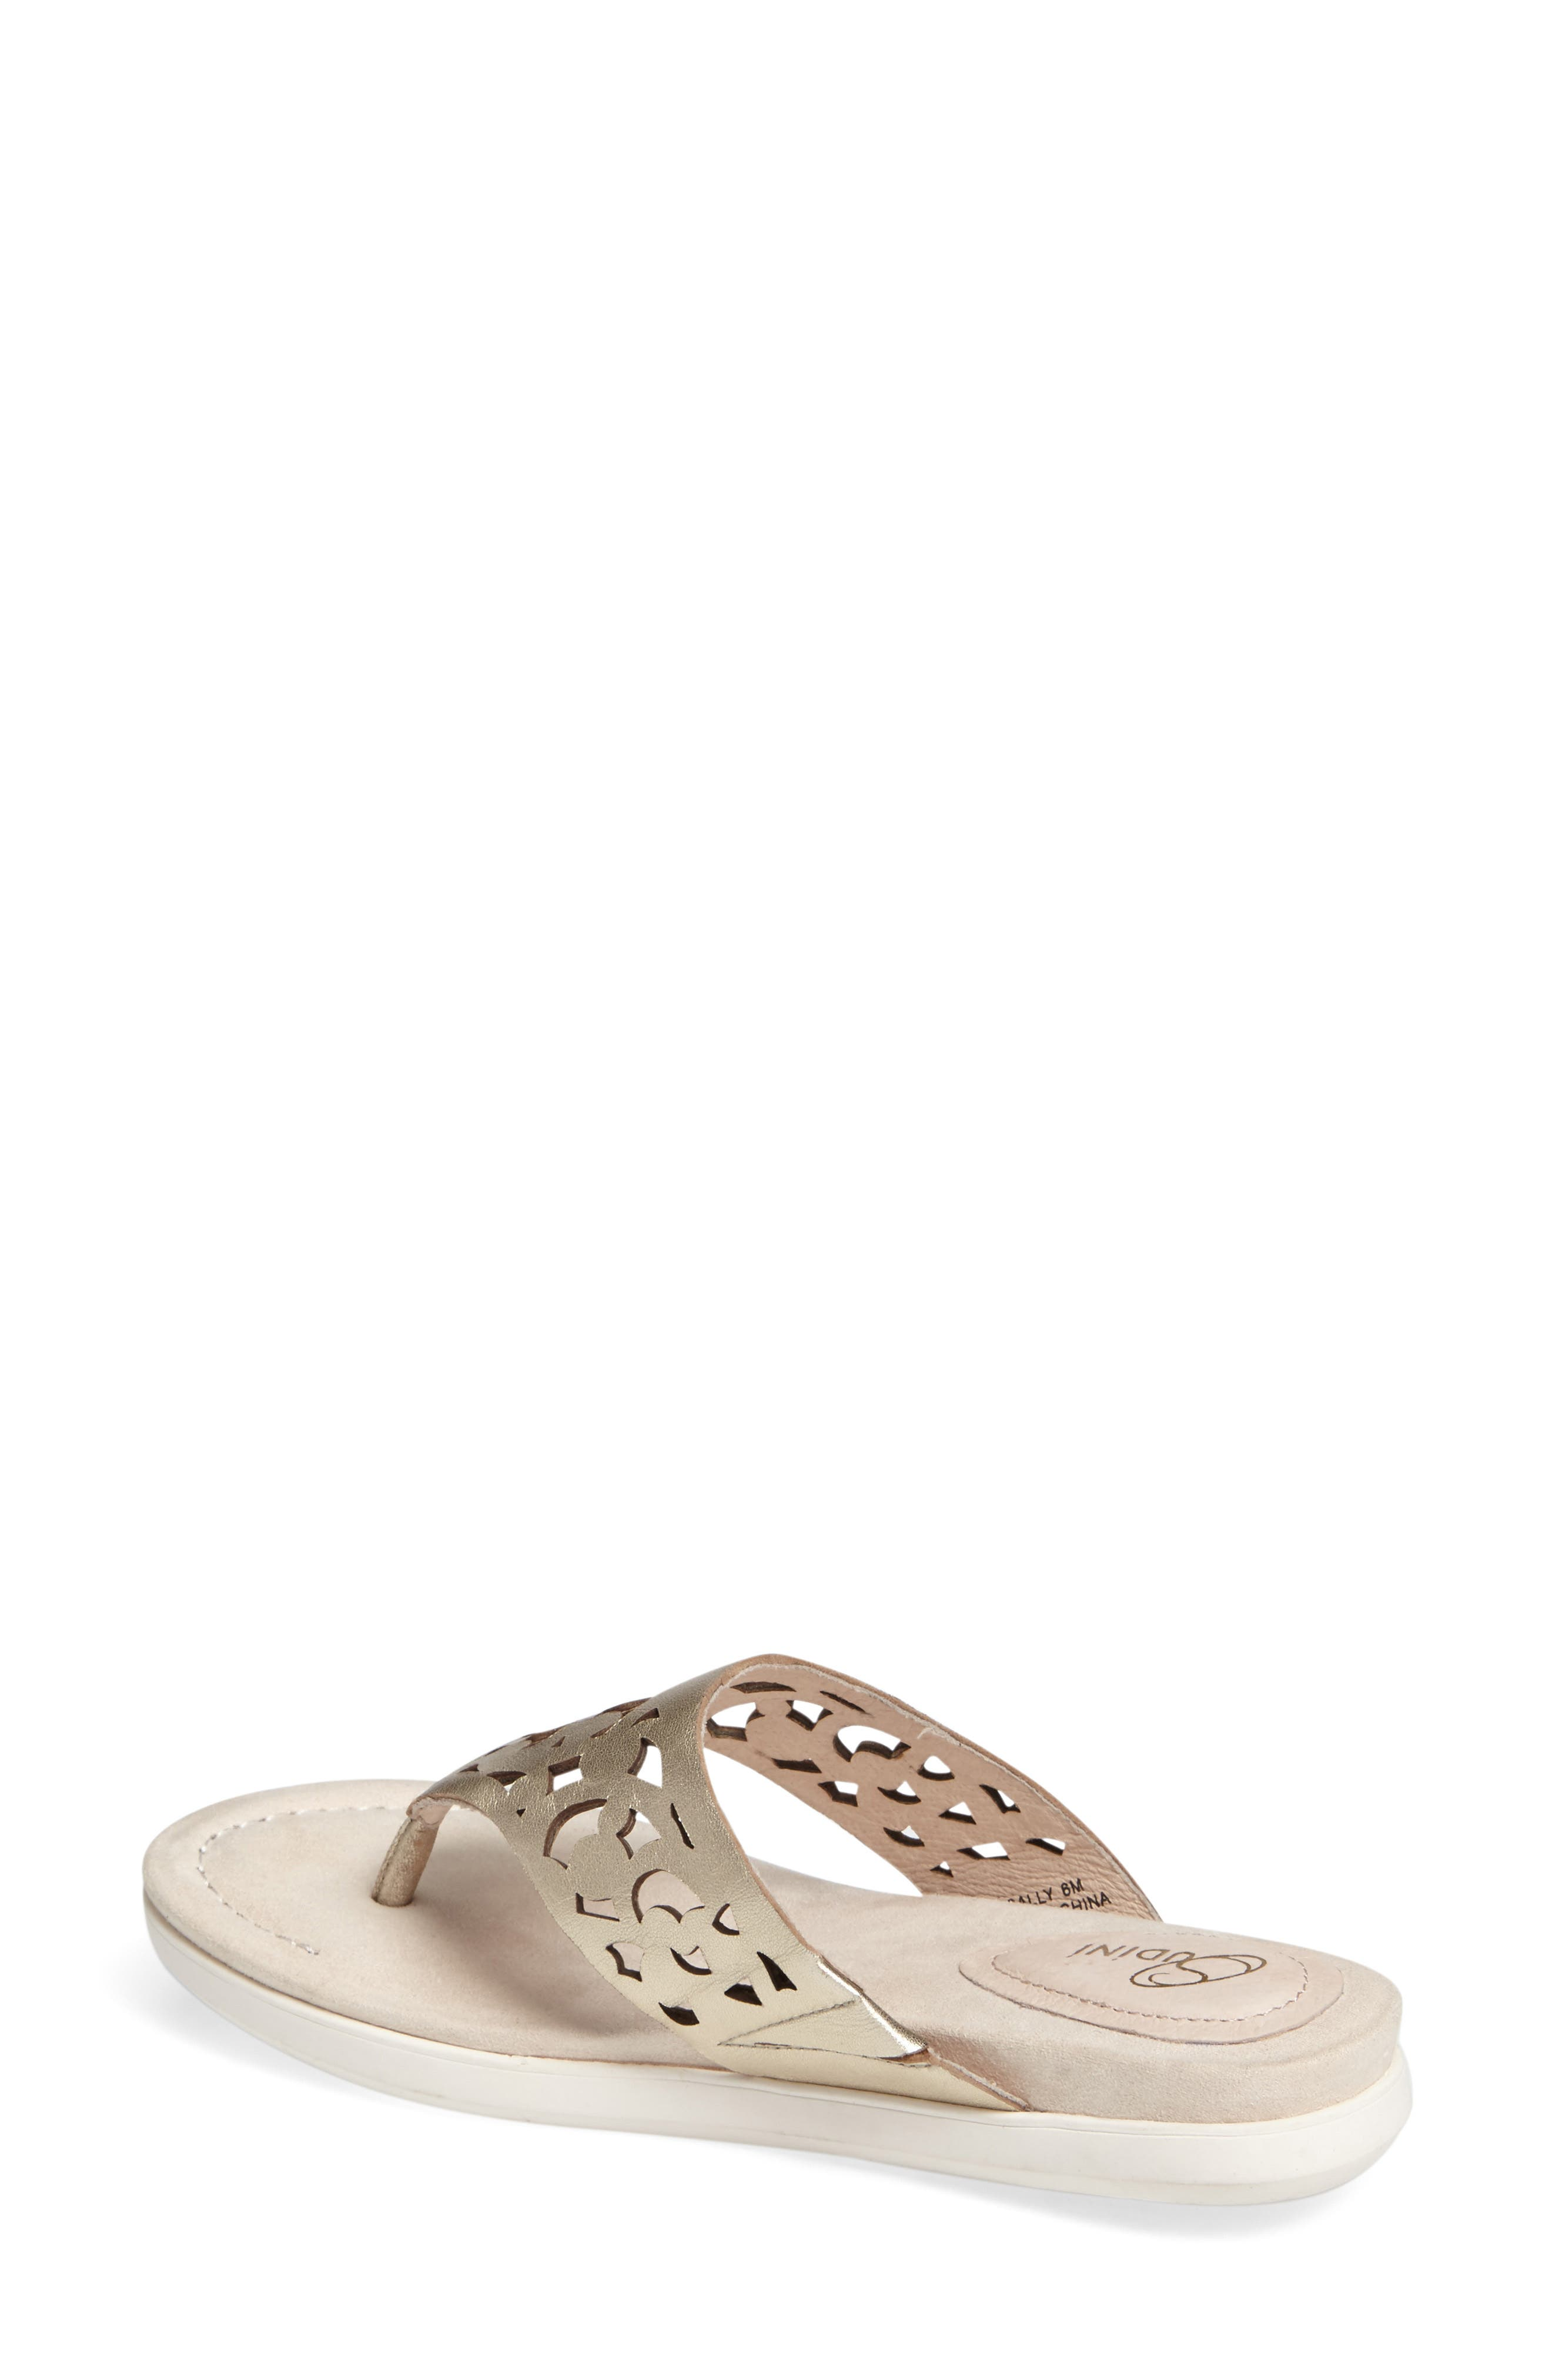 Alternate Image 2  - Sudini Sally Perforated Flip Flop (Women)